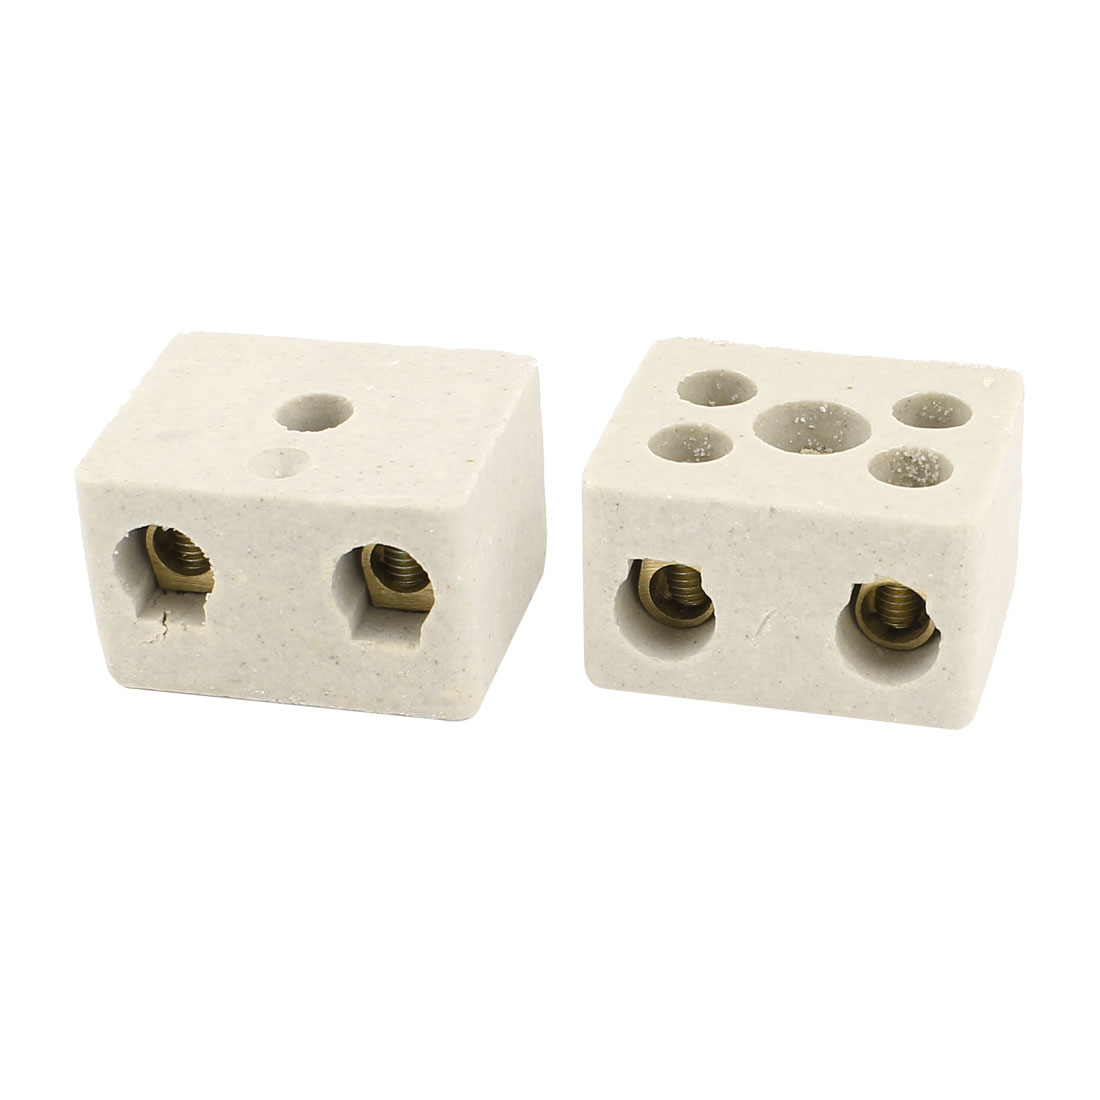 2 Pcs Insulation High Temp Porcelain Ceramic Terminal Block AC 380V 30A